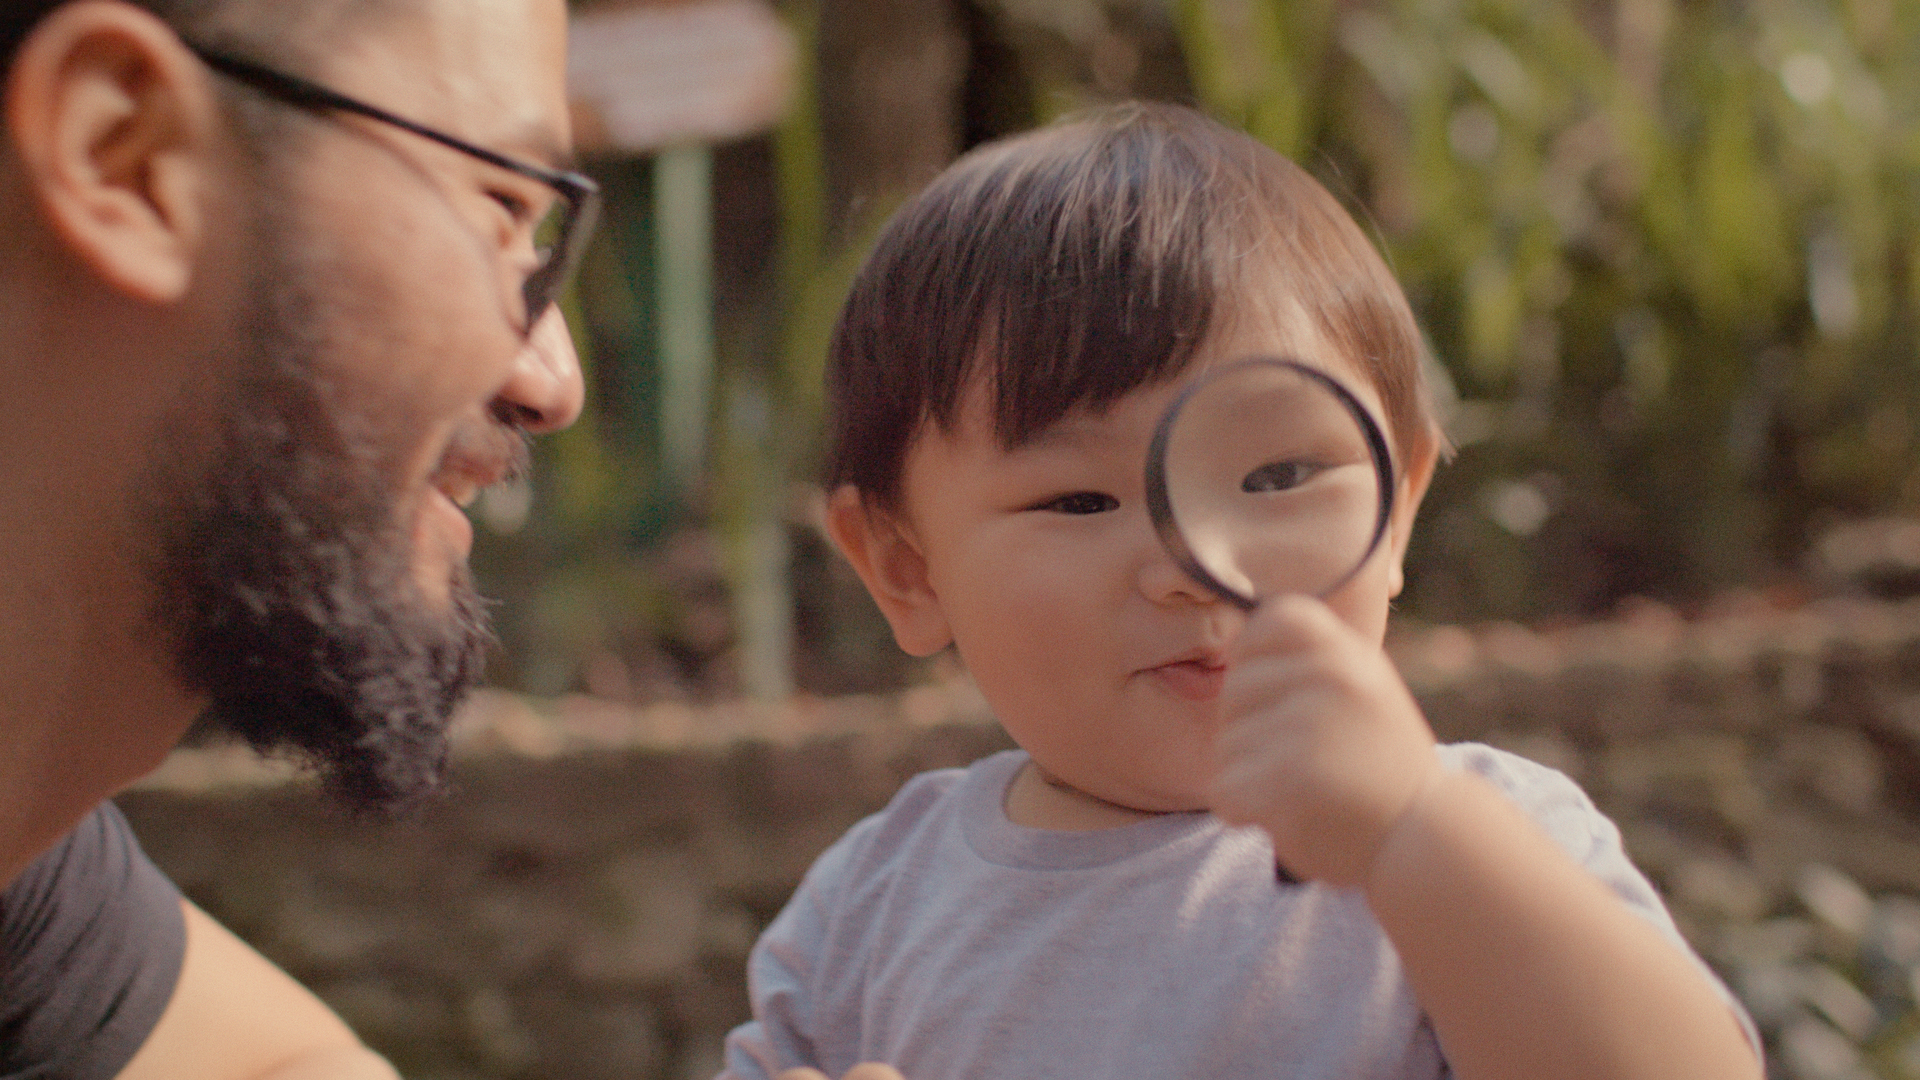 Still image from The Beginning of Life 2 – Outside movie that explores how children experience the natural world